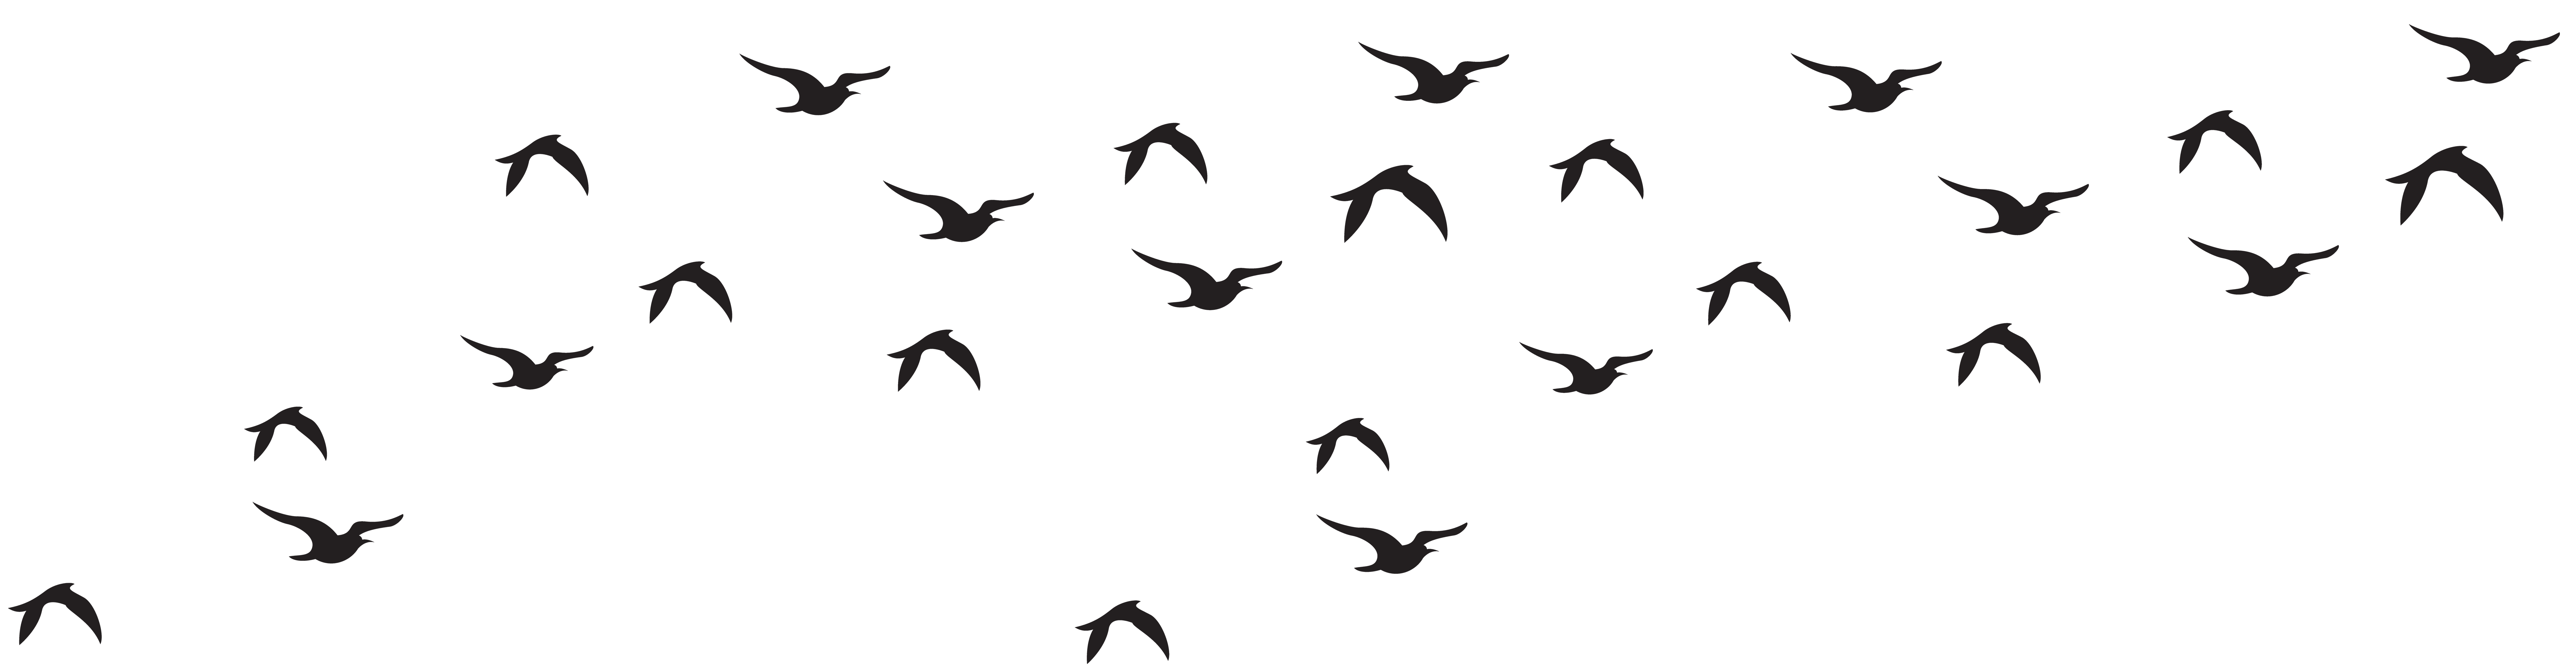 Clipart birds simple. Flock of pencil and